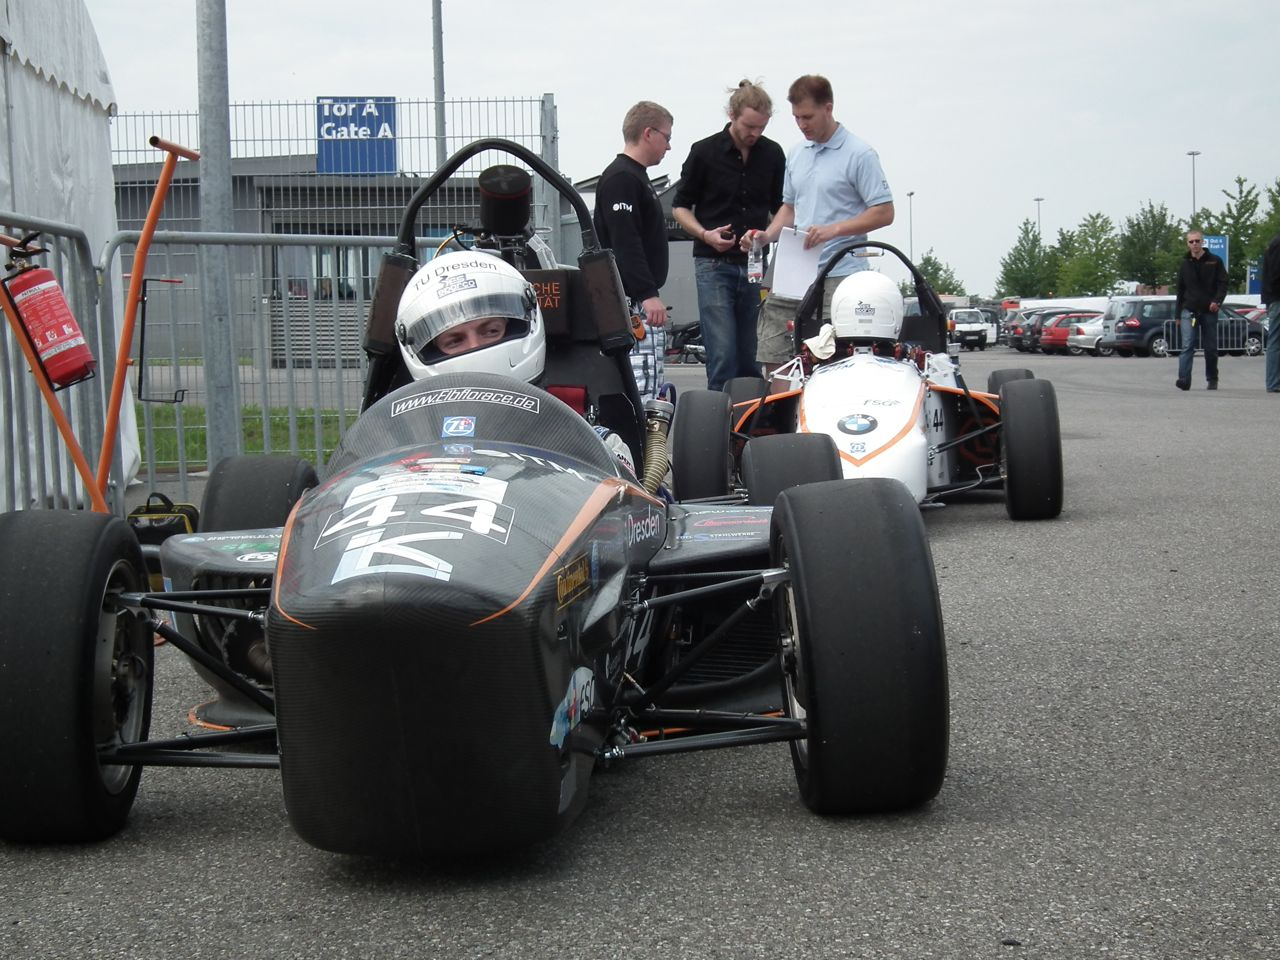 zf_racecamp_201112